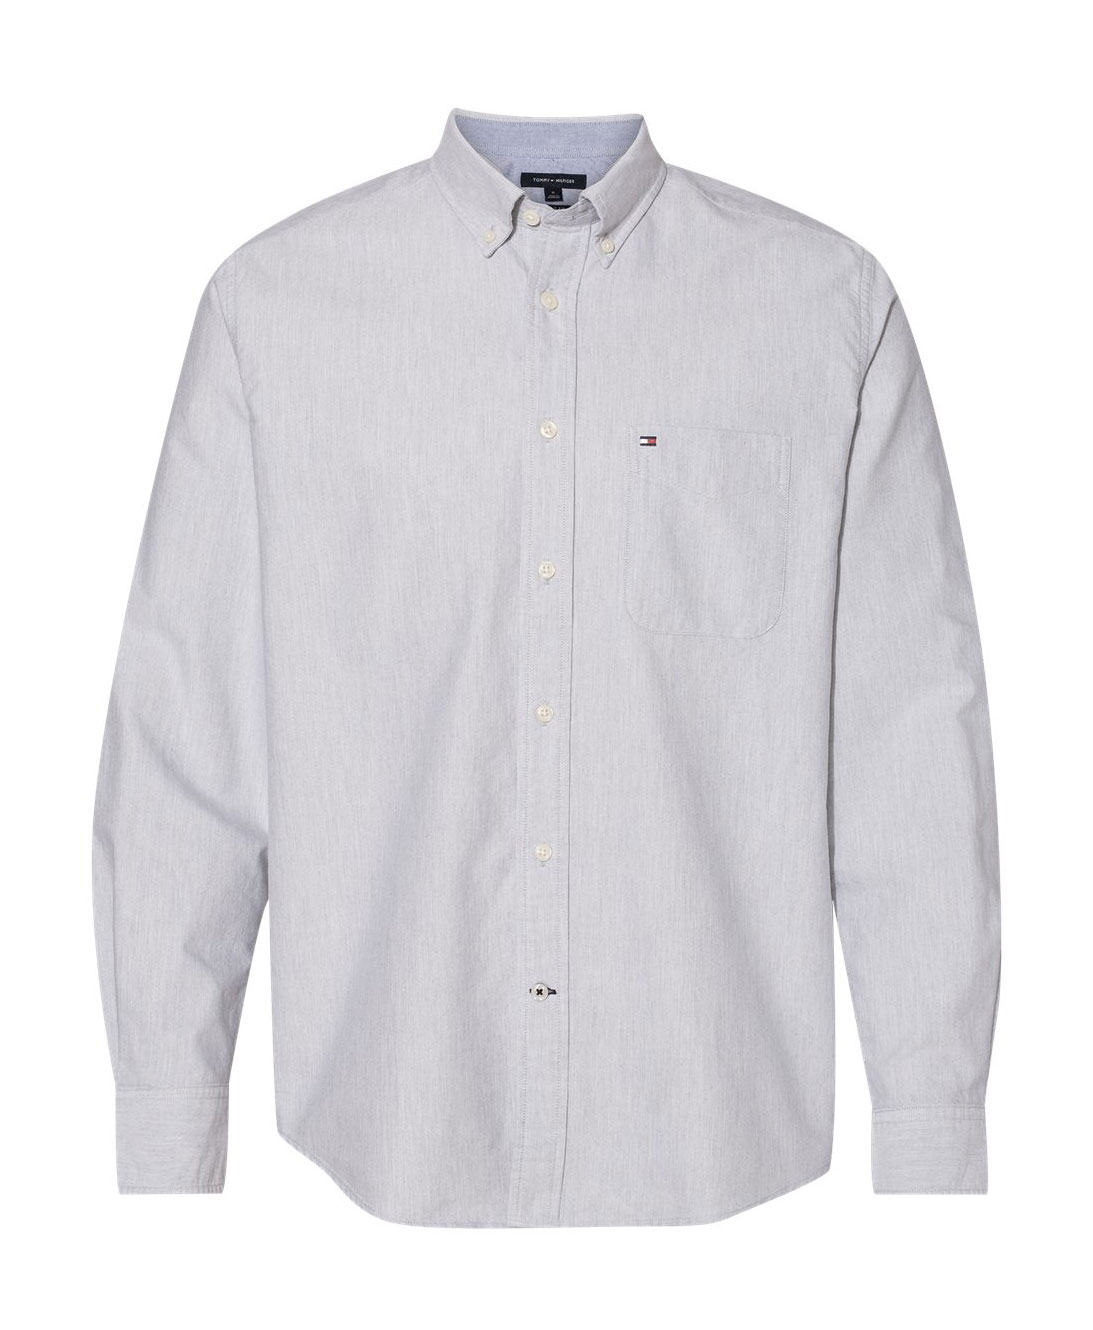 Tommy Hilfiger - Adult New England Solid Oxford Shirt